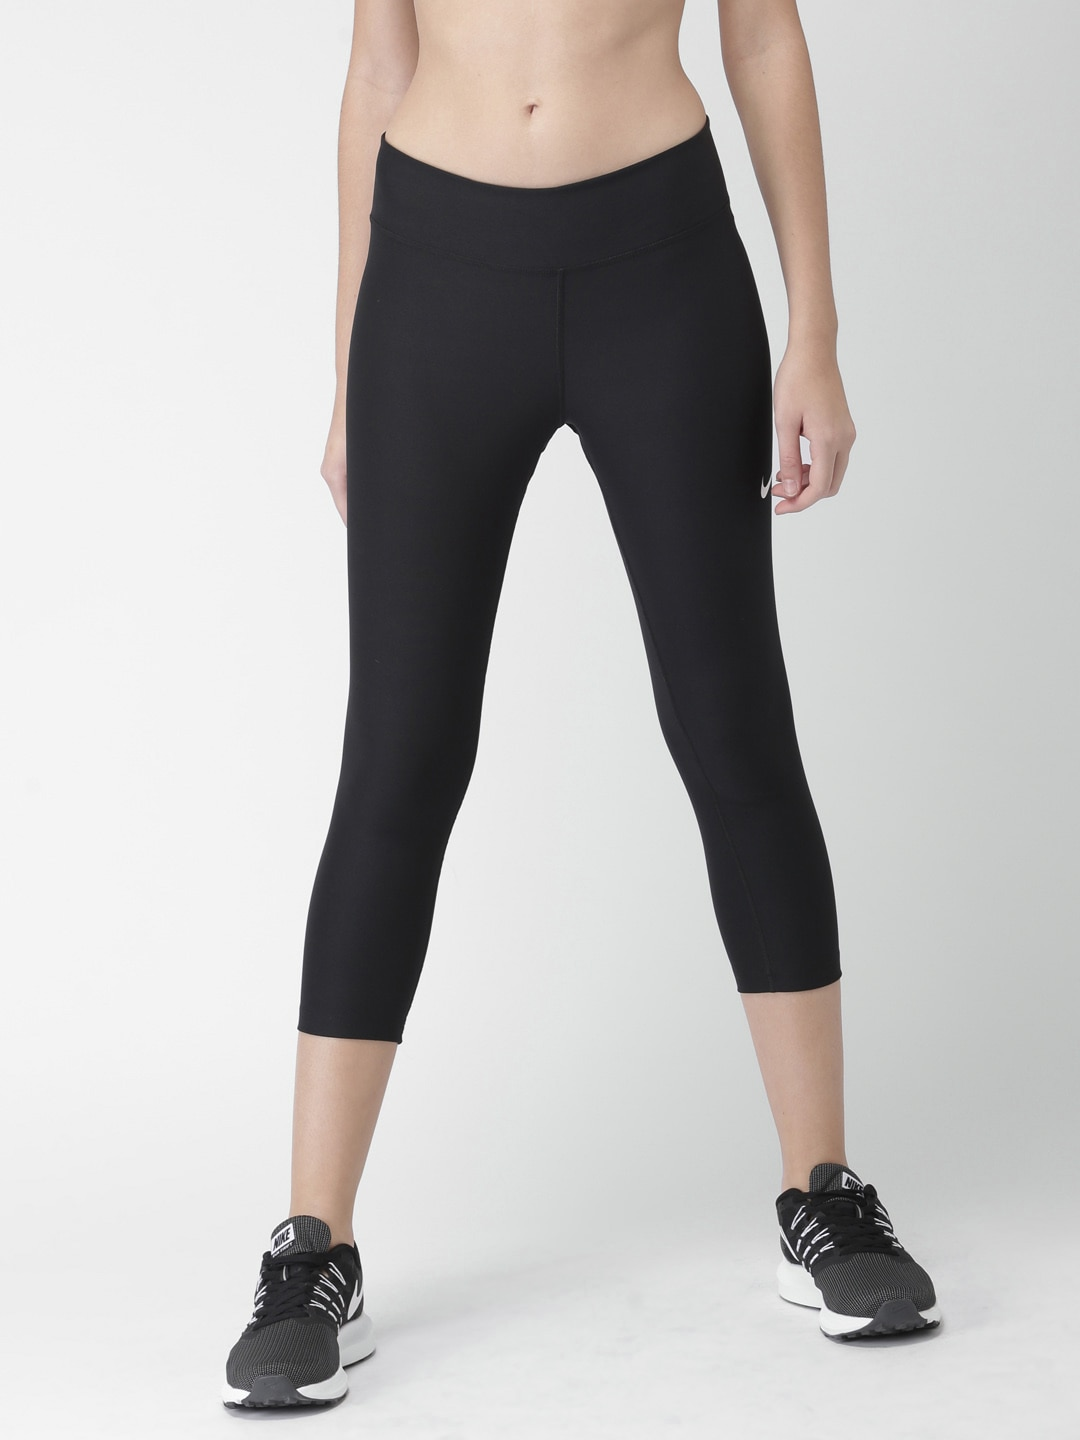 329ae3c7a361fa Nike Power Tights Capris - Buy Nike Power Tights Capris online in India